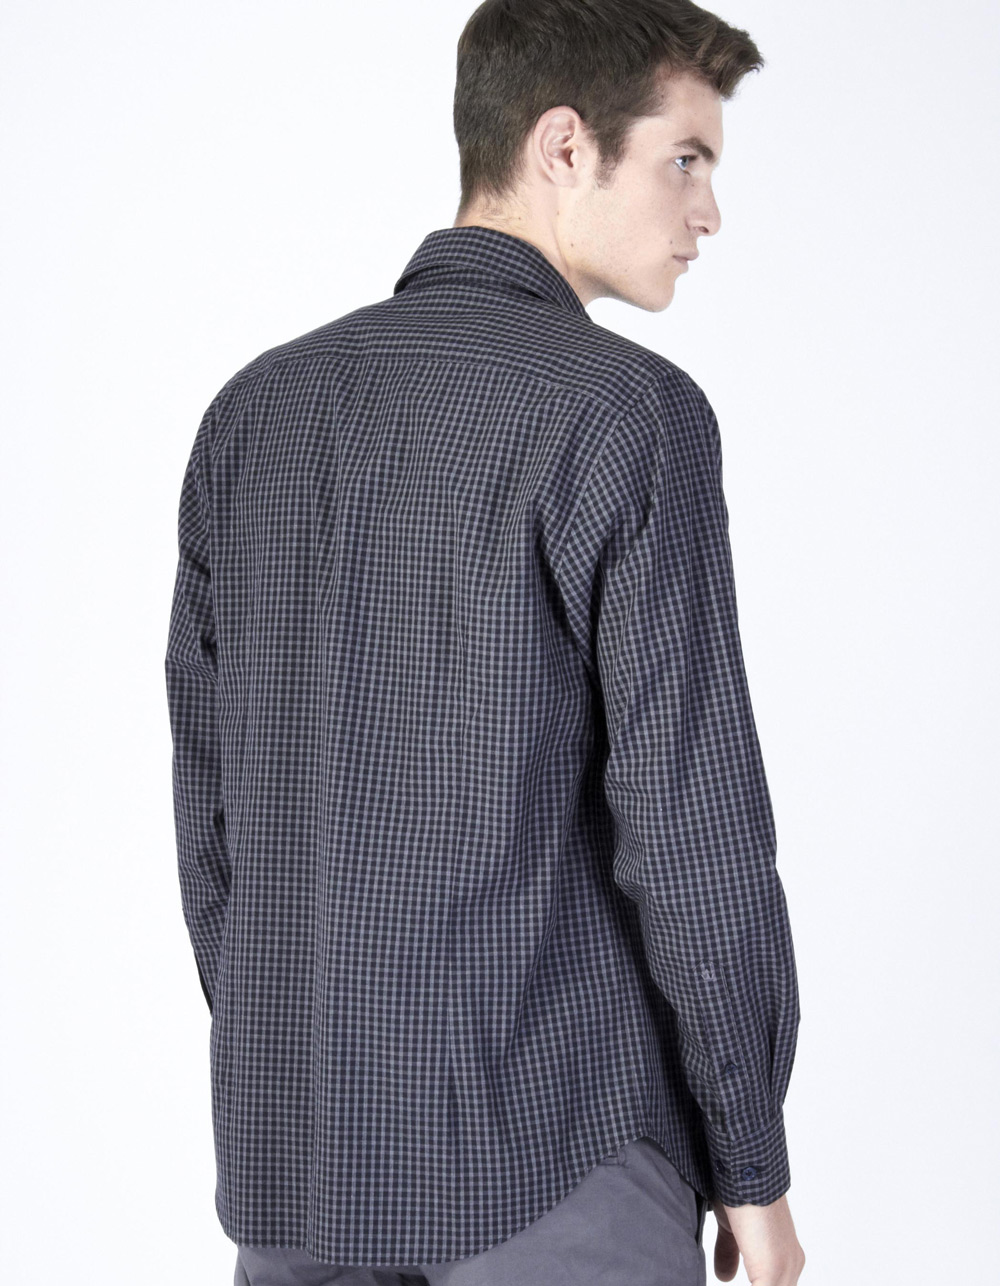 Charcoal grey plaid shirt - Backside